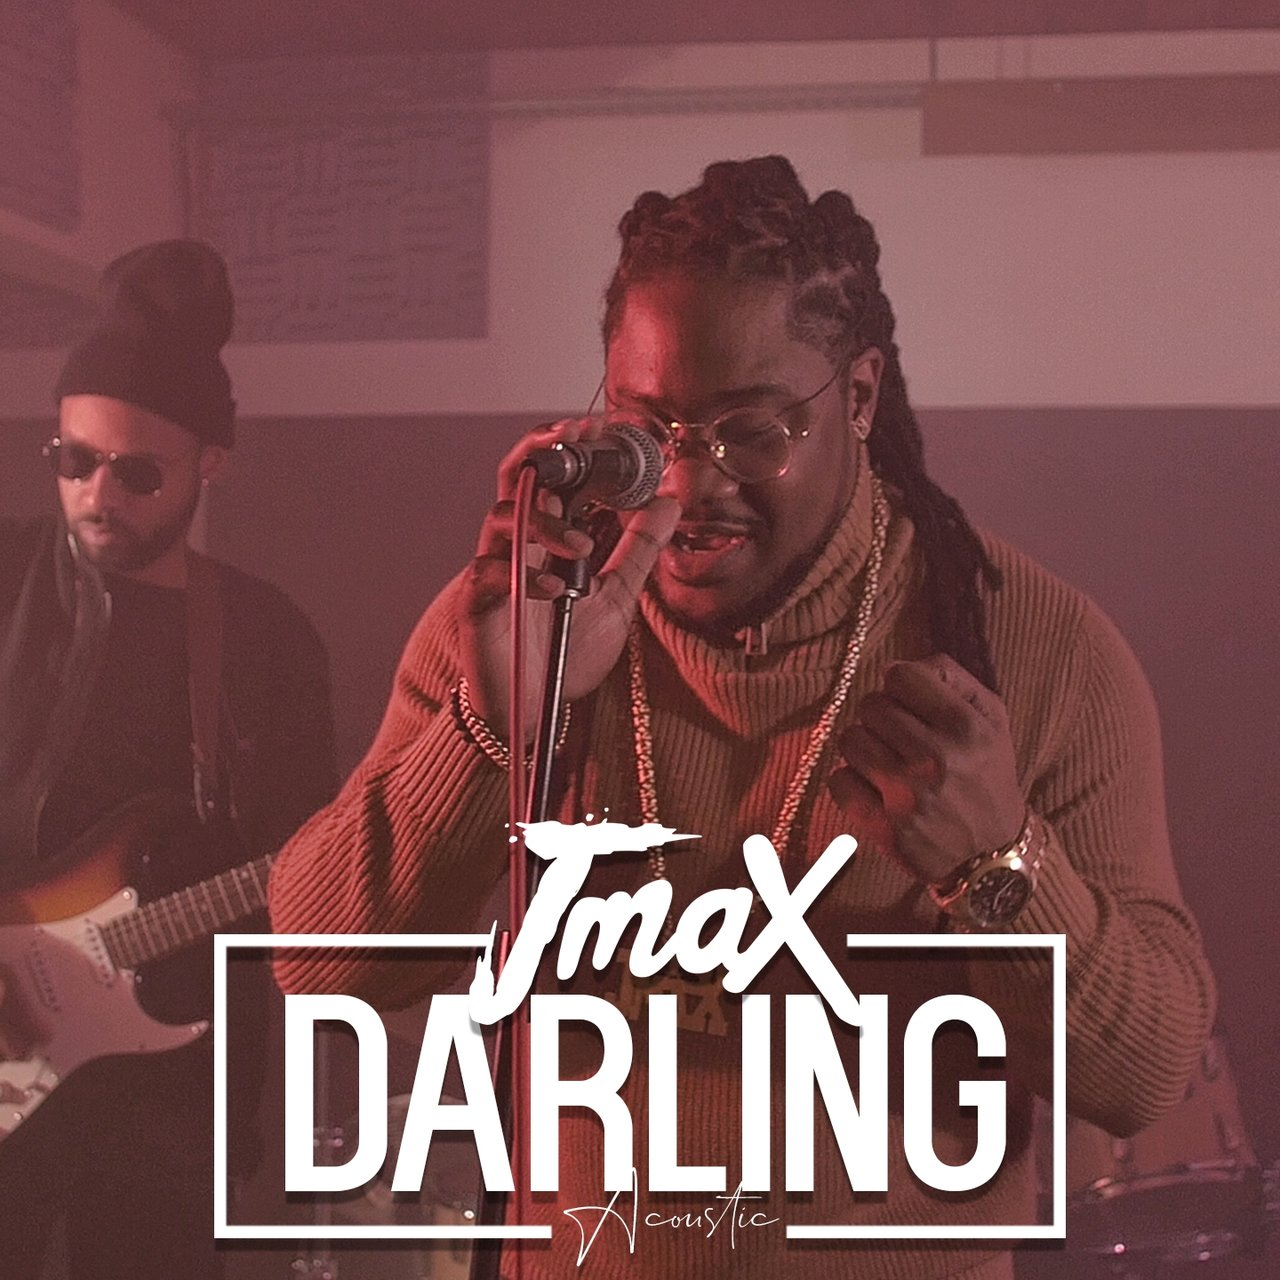 Jmax - Darling (Acoustic) (Cover)